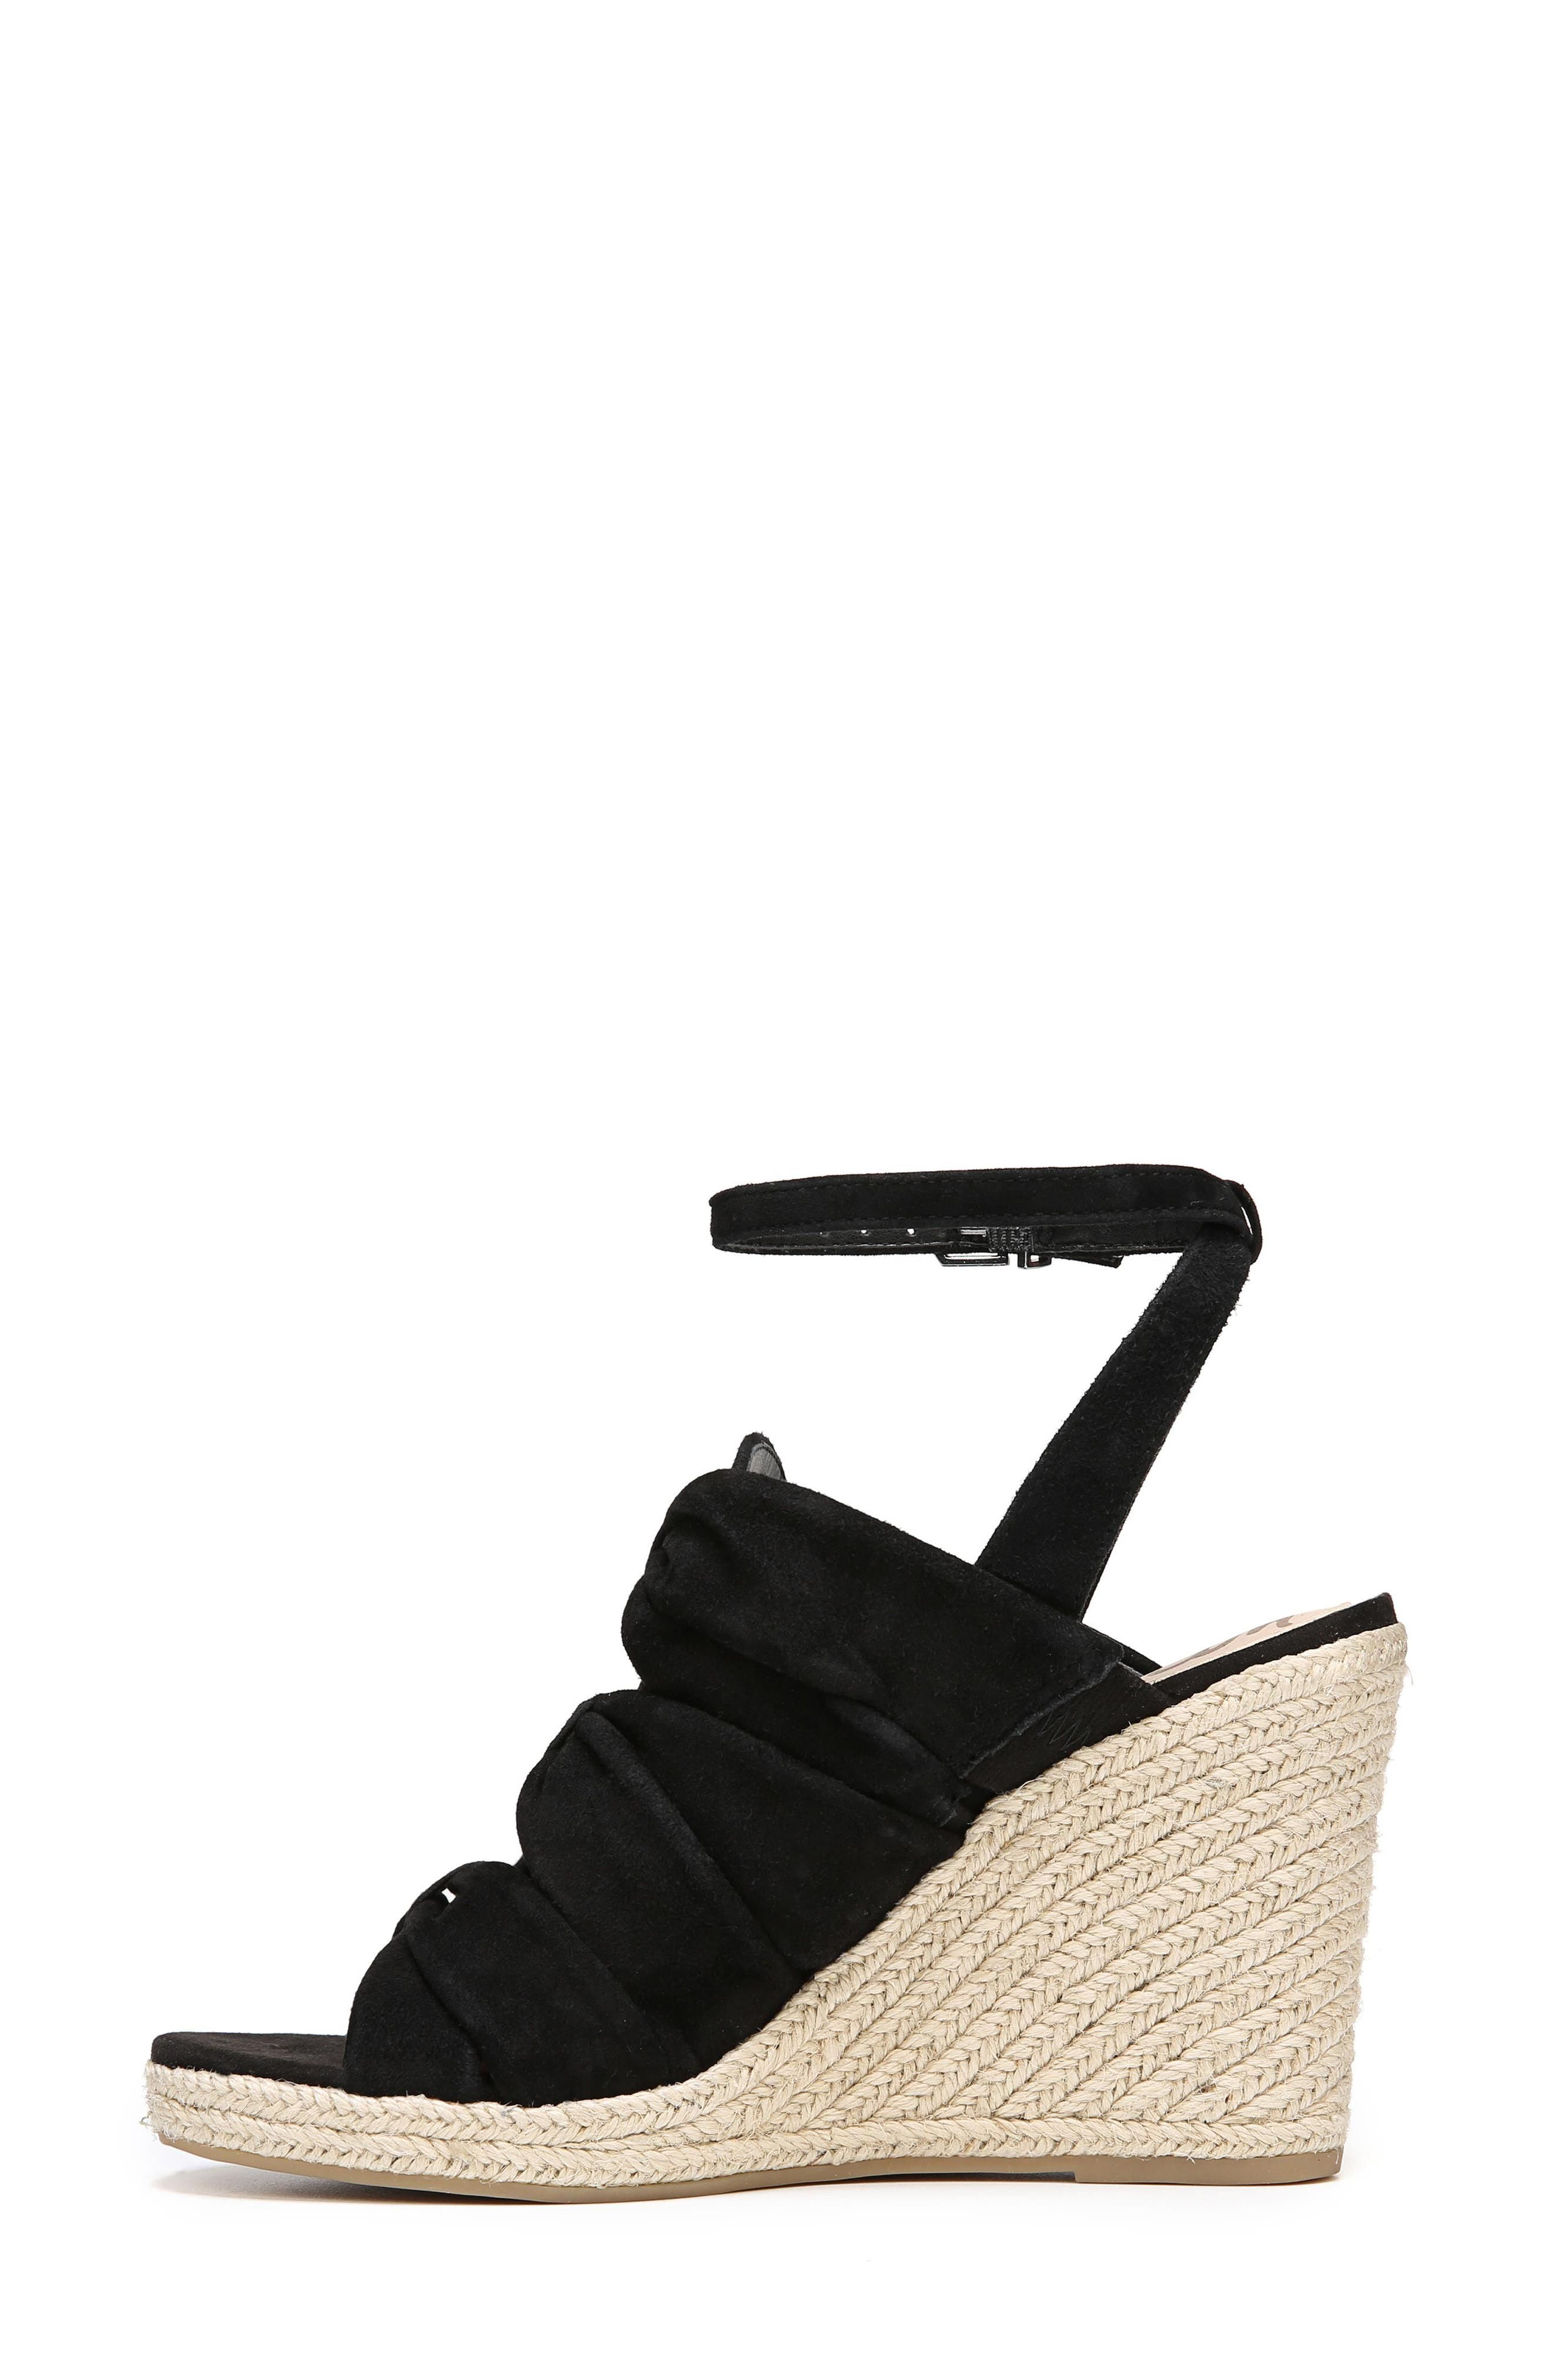 Awan Cinched Wedge Sandal,                             Alternate thumbnail 5, color,